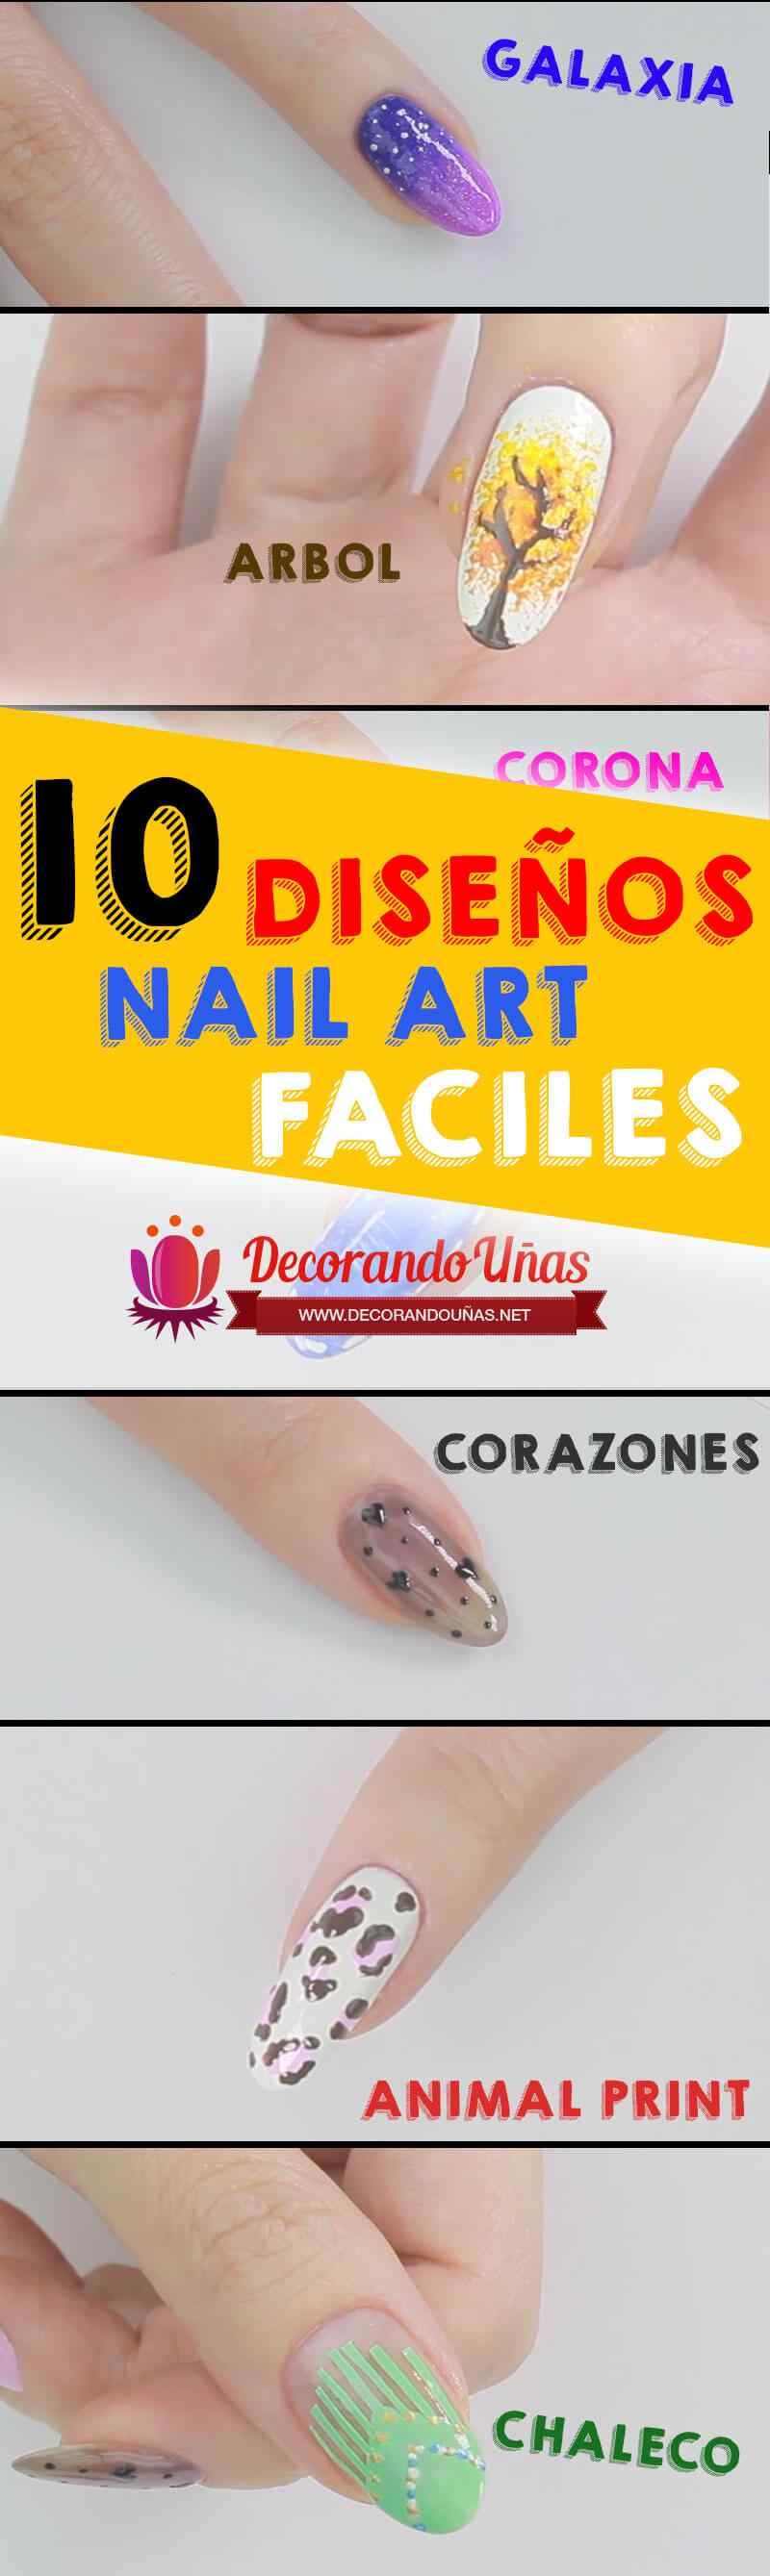 unas-faciles-pinterest-nailart